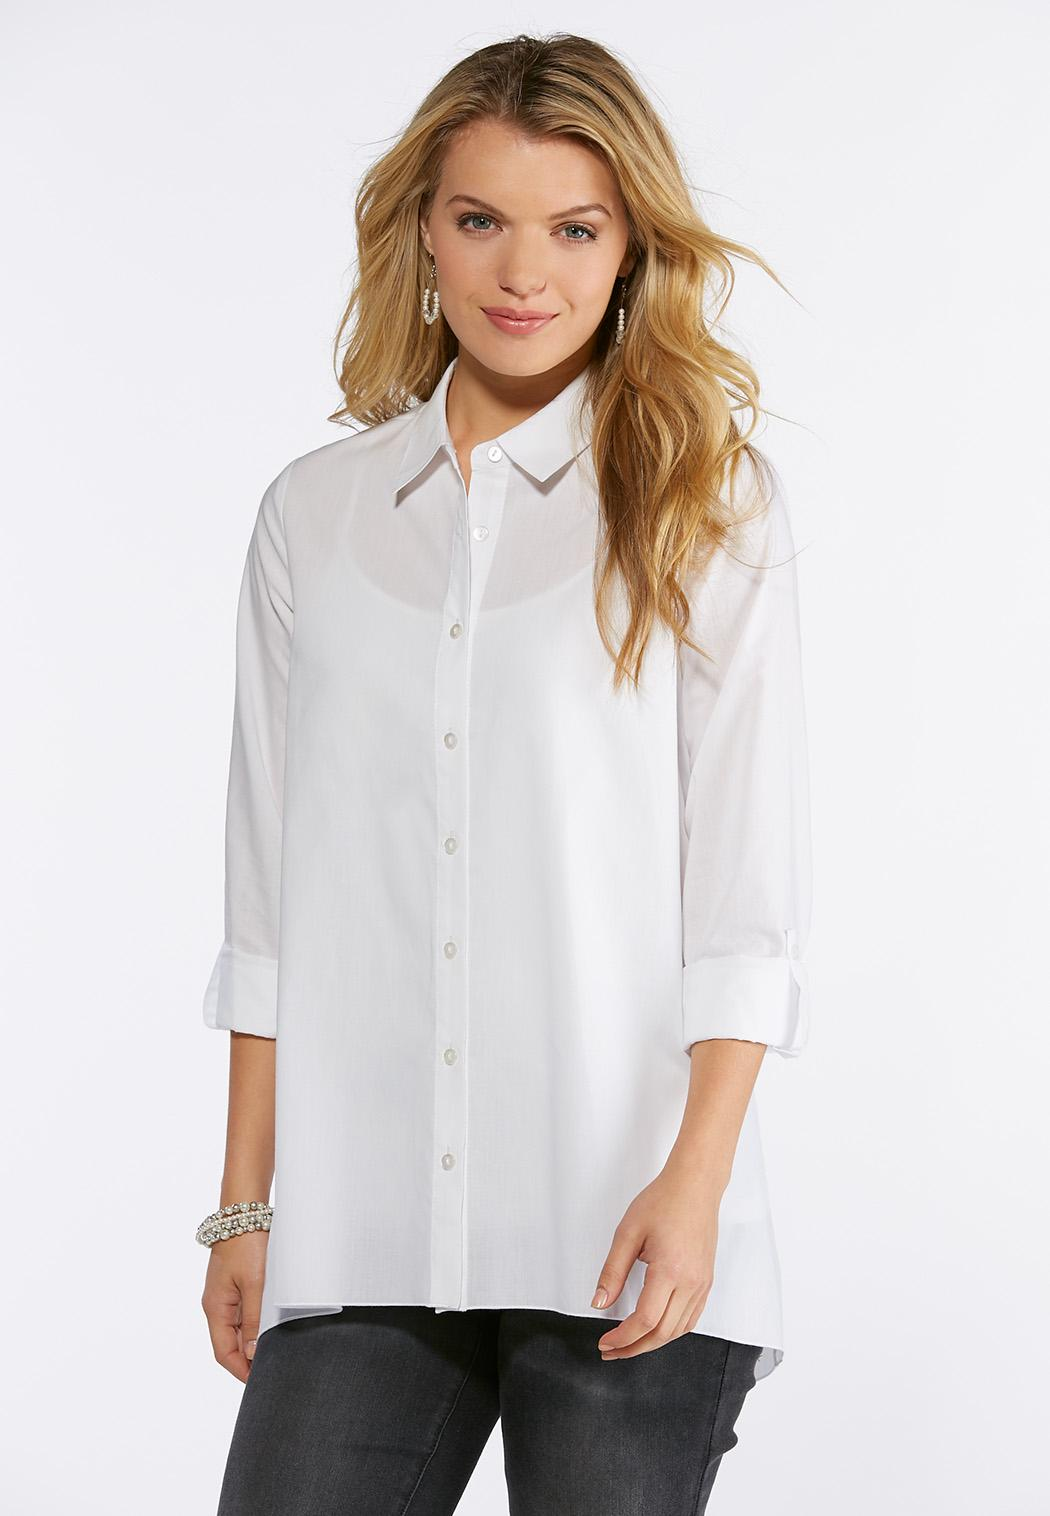 5fd7bfc6e211f Plus Size White Button Down Tunic Top Shirts   Blouses Cato Fashions